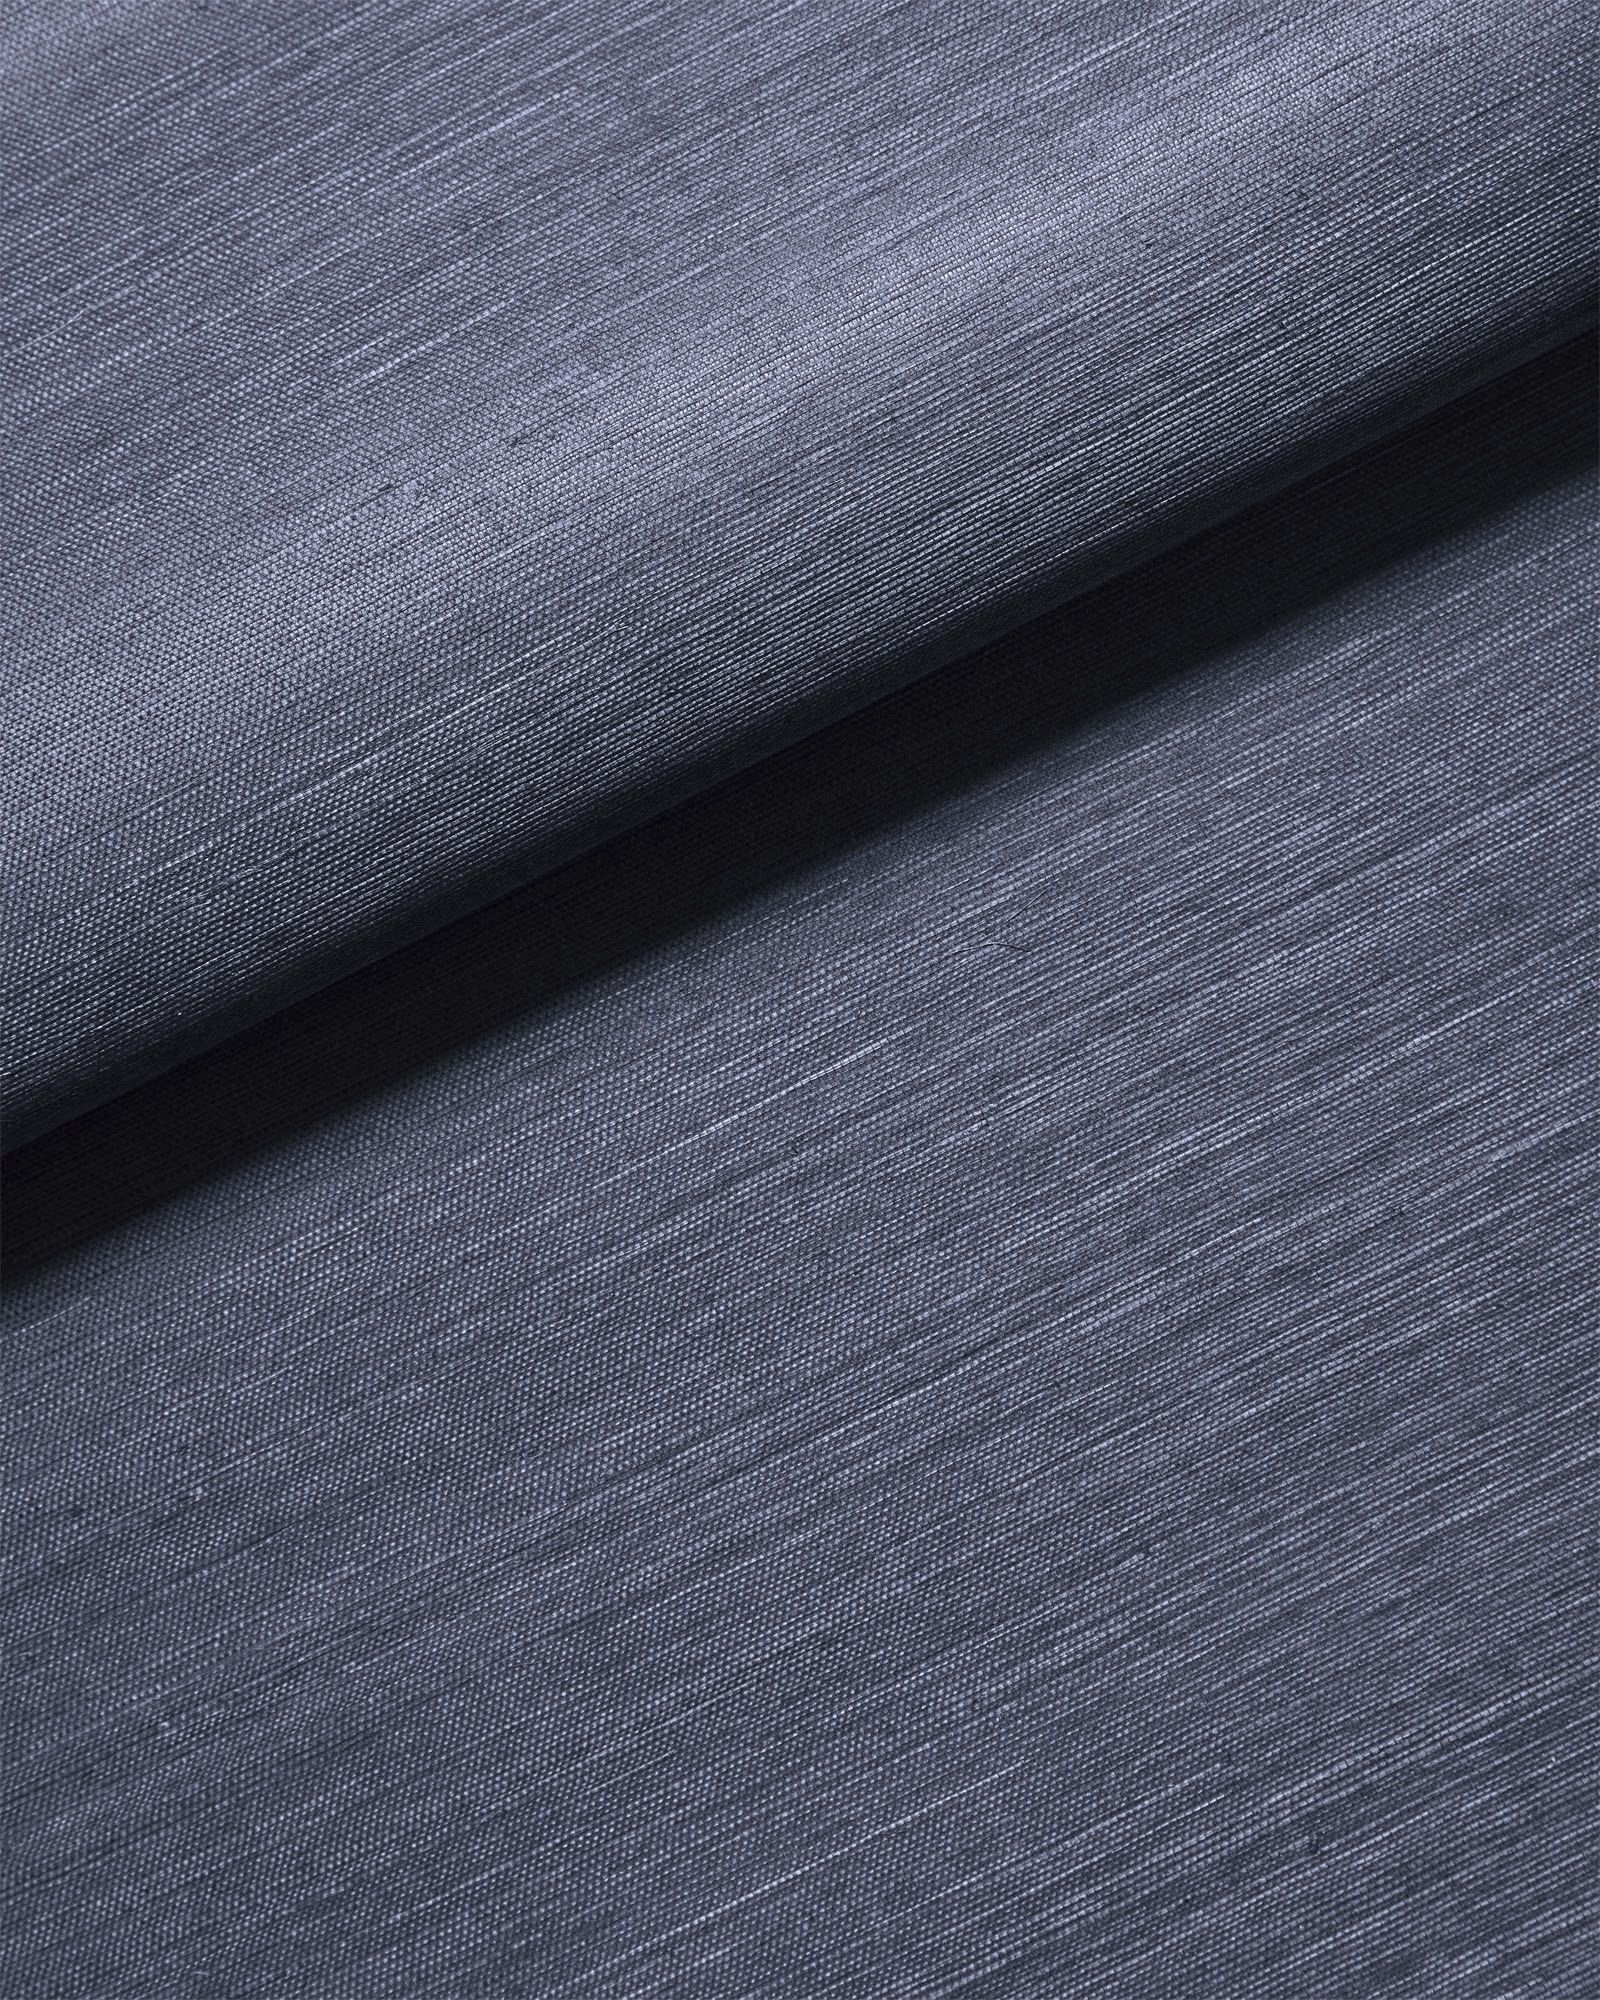 Serena & Lily Grasscloth Wallcovering Navy home decor